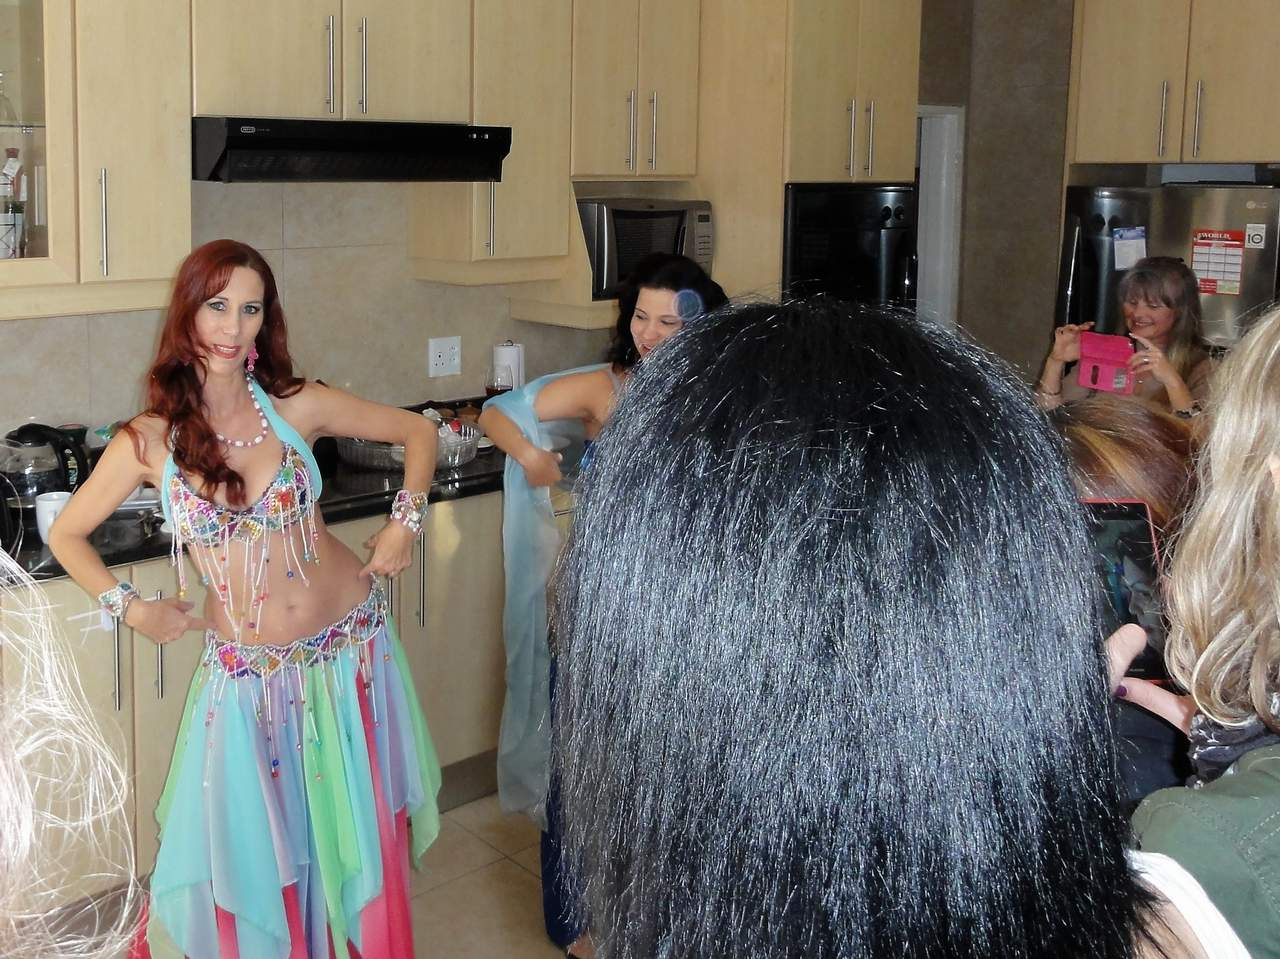 Mum to be and friends having belly dance lesson.